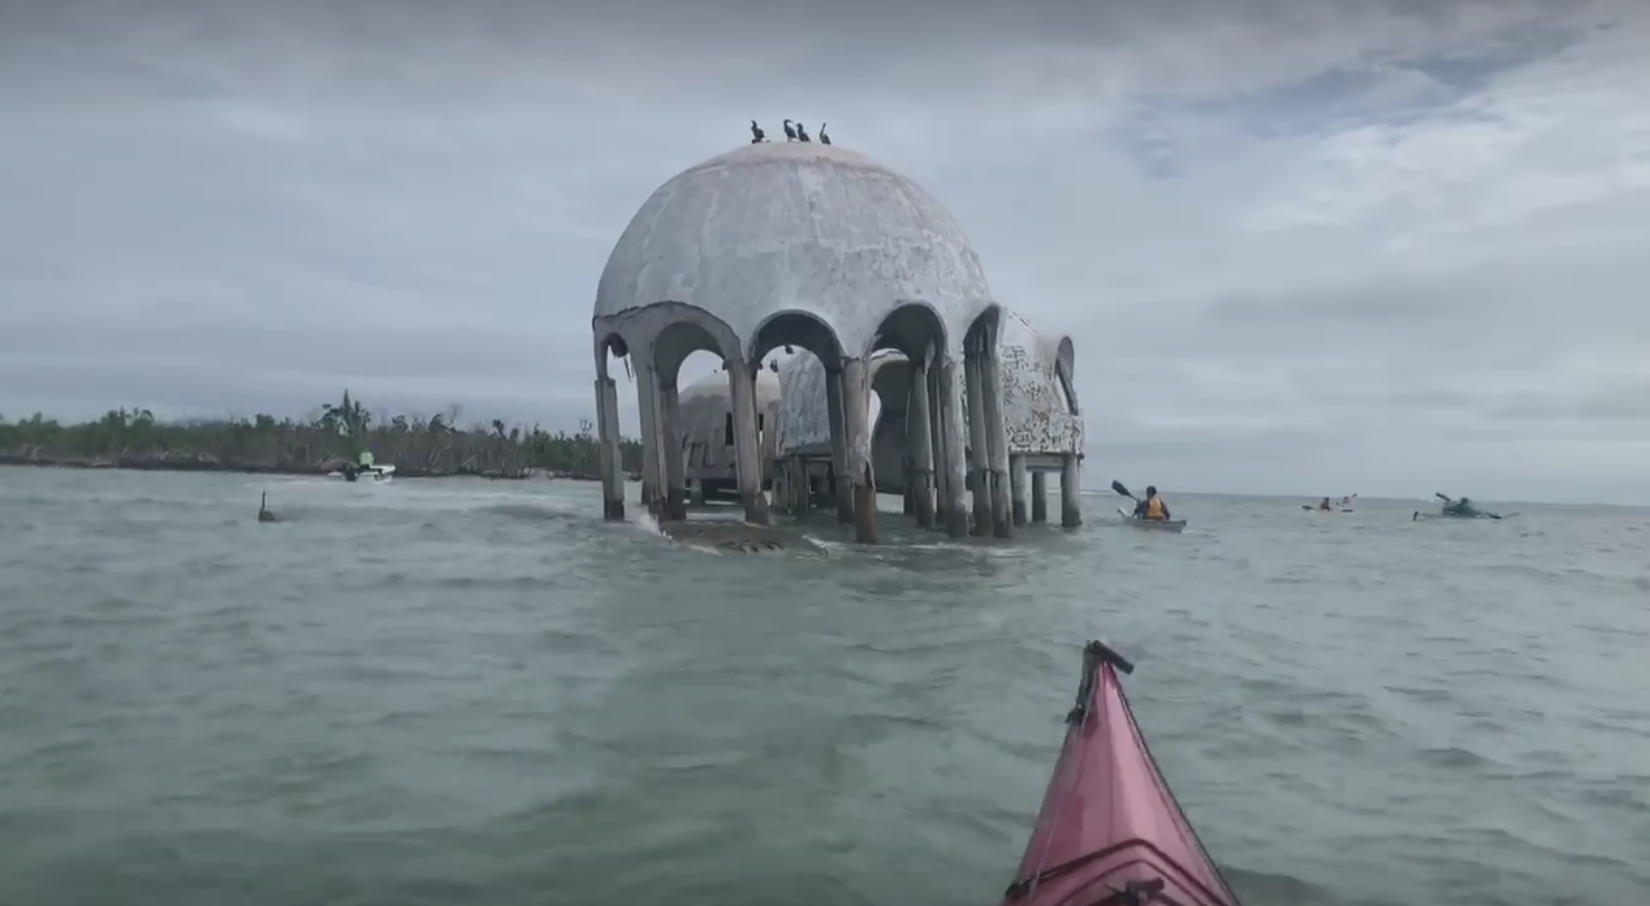 The Dome Houses at Marco Island, Florida | Dr. David S. Chen